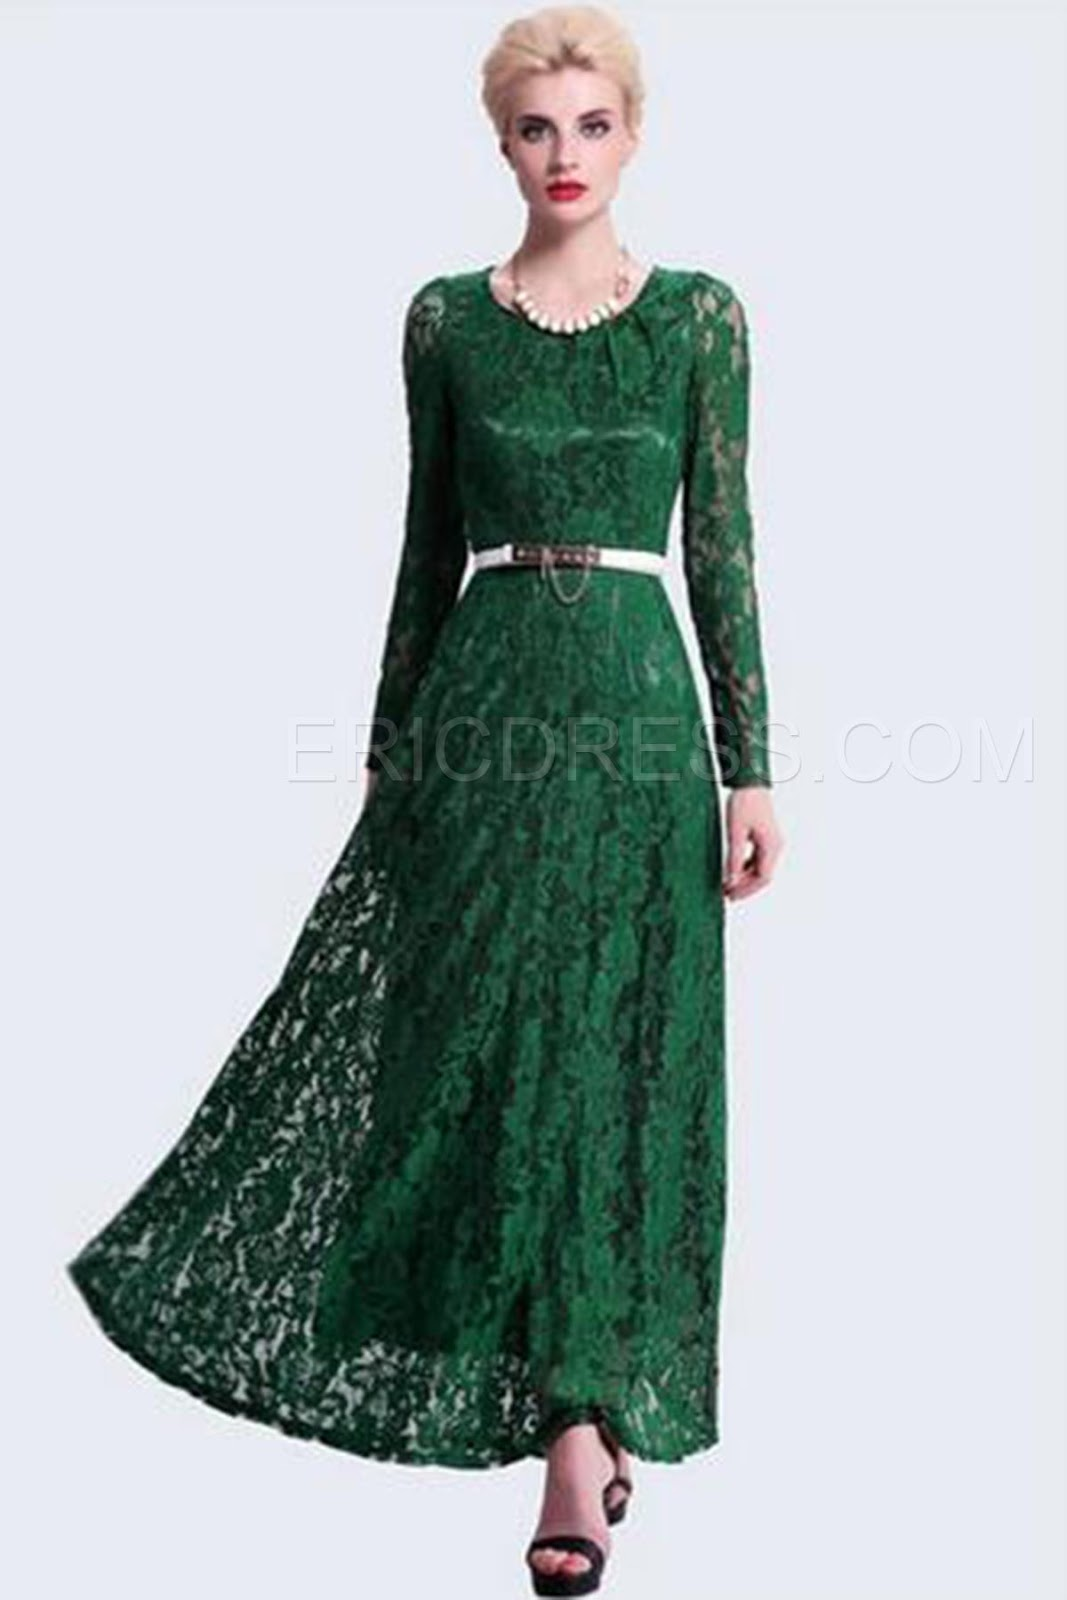 http://www.ericdress.com/product/Gorgeous-Green-Round-Neck-Long-Sleeve-Jacquard-Lace-Maxi-Dress-10978845.html